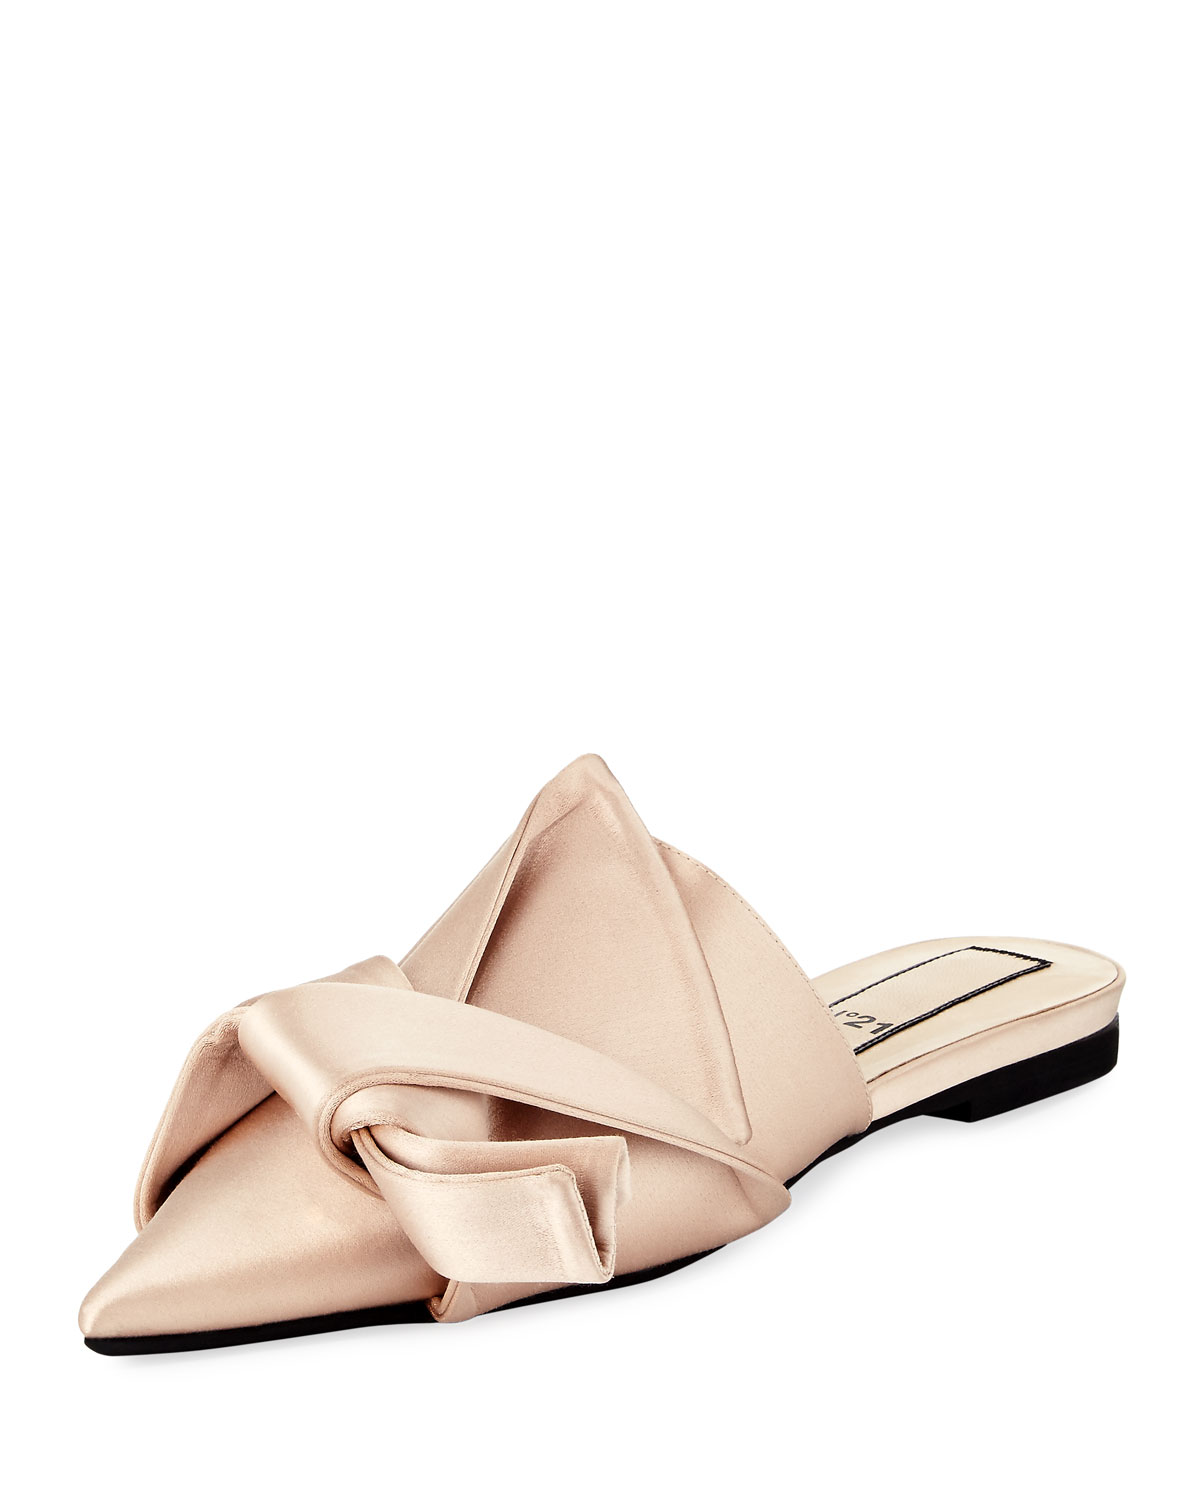 No. 21 Satin Pointed-Toe Mules fashion Style sale online perfect sale online ezWQkQhb